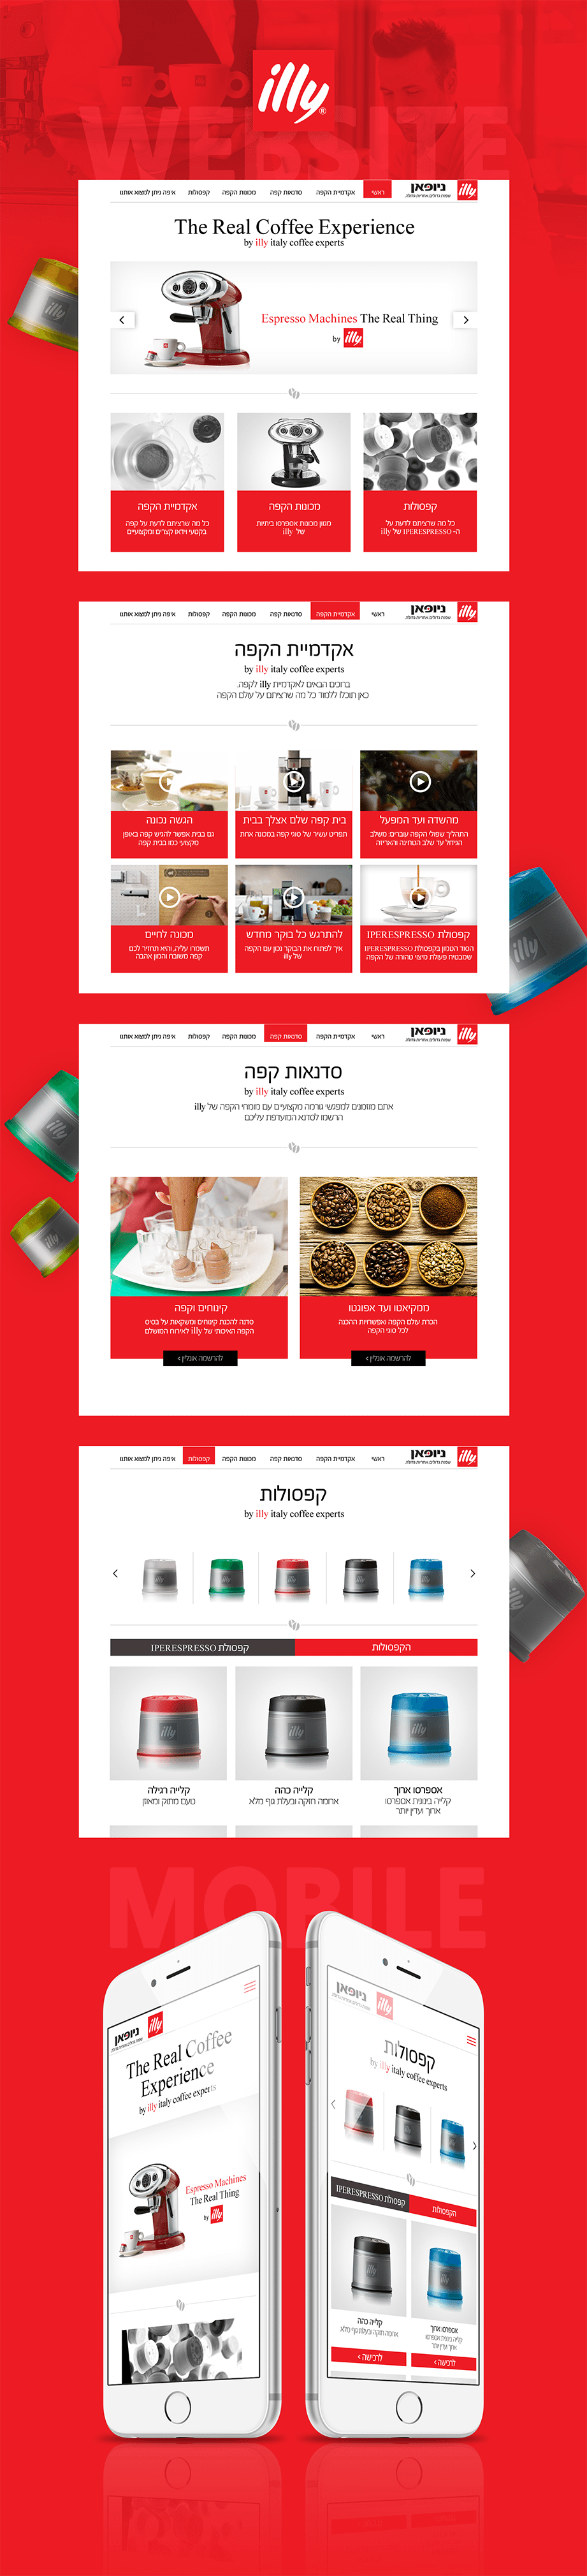 product-banner-